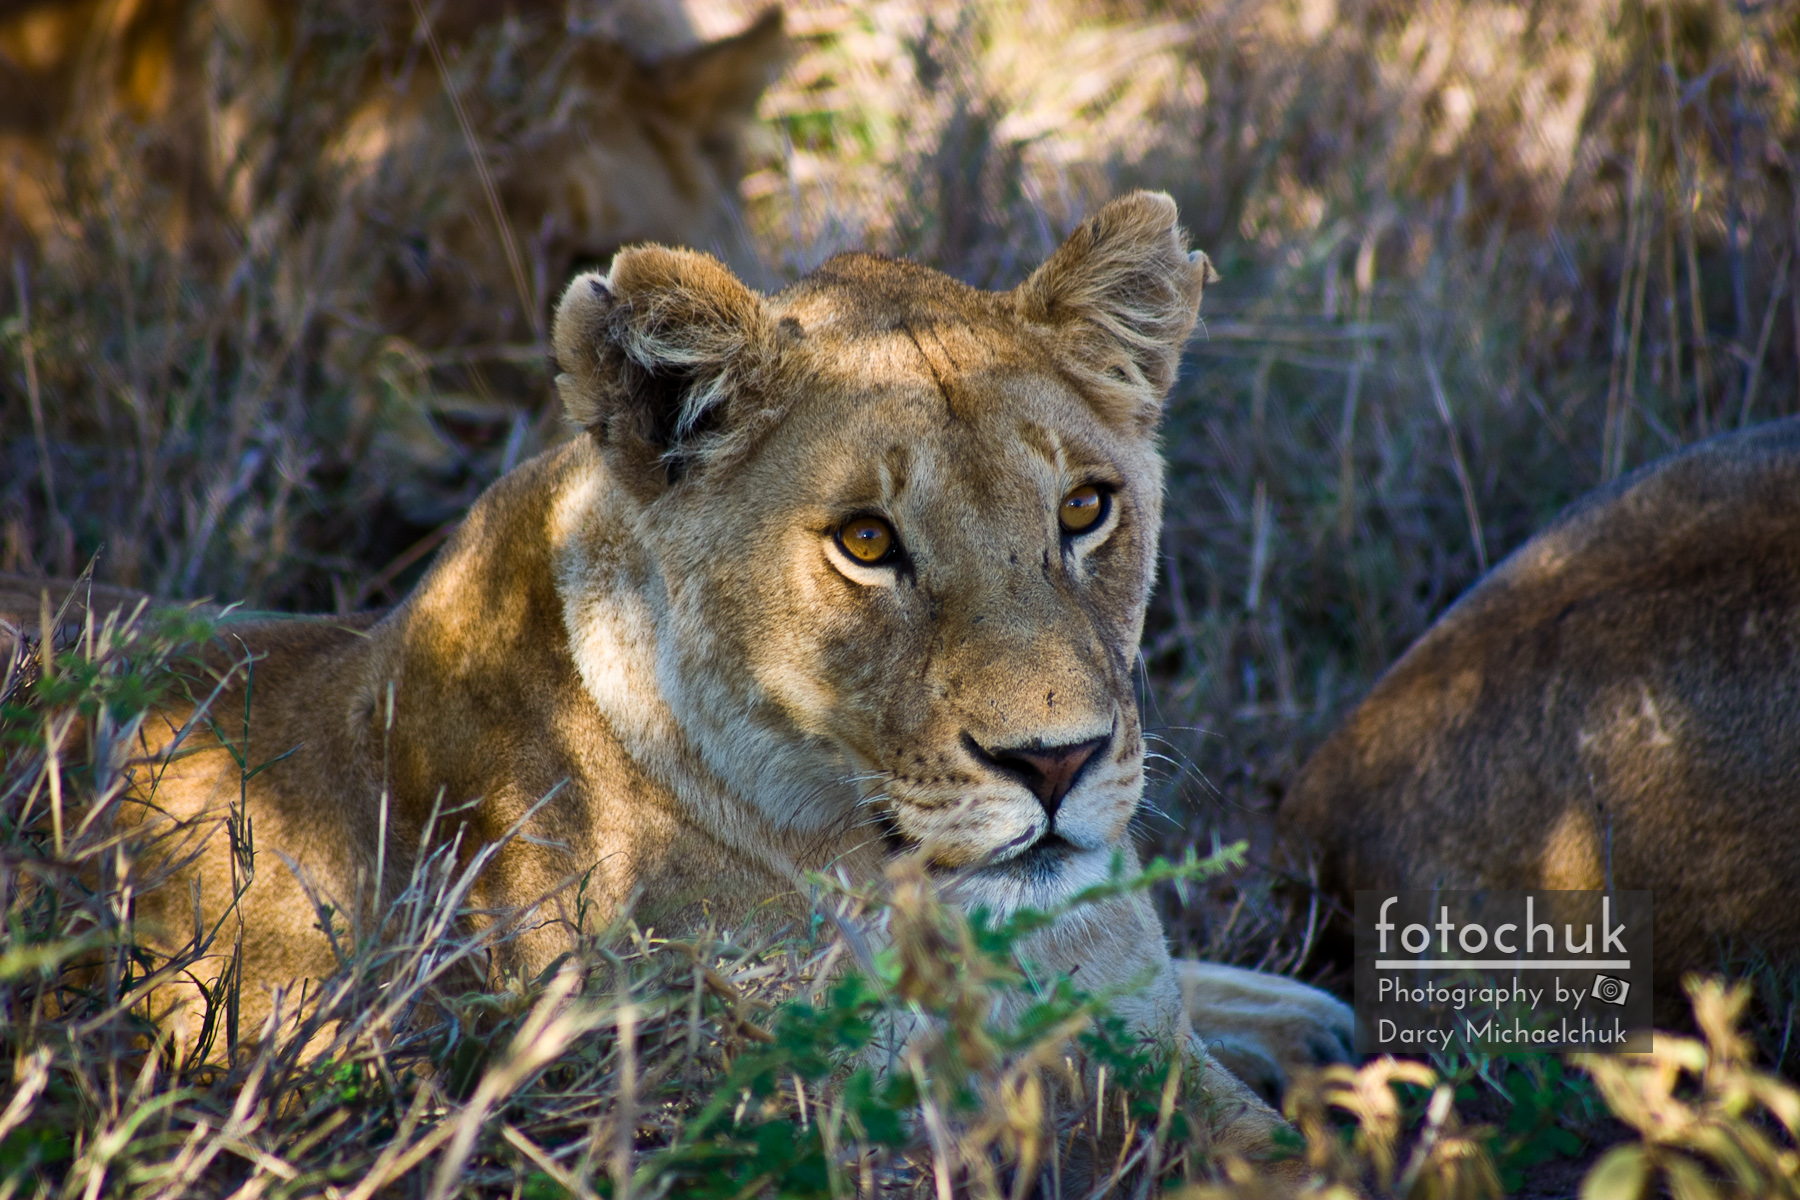 Lioness with Pride in Shade